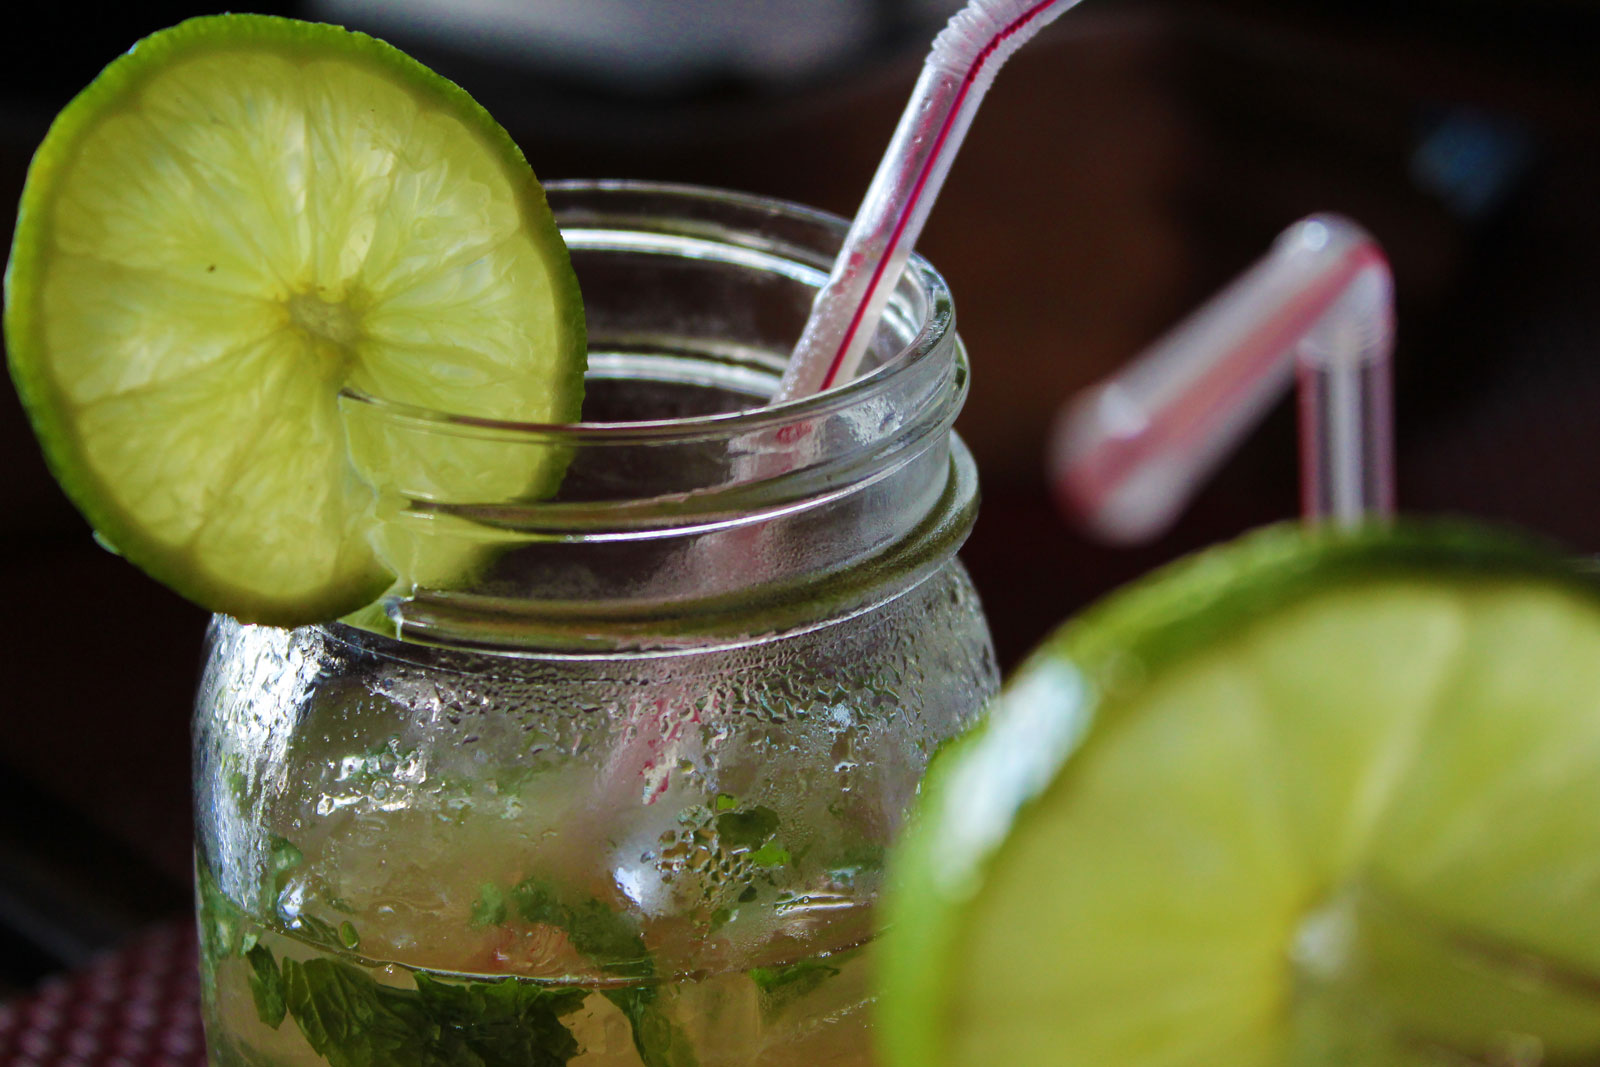 Gin Rocket   Healthy Happy Hour With These Vegetable Juice Cocktails